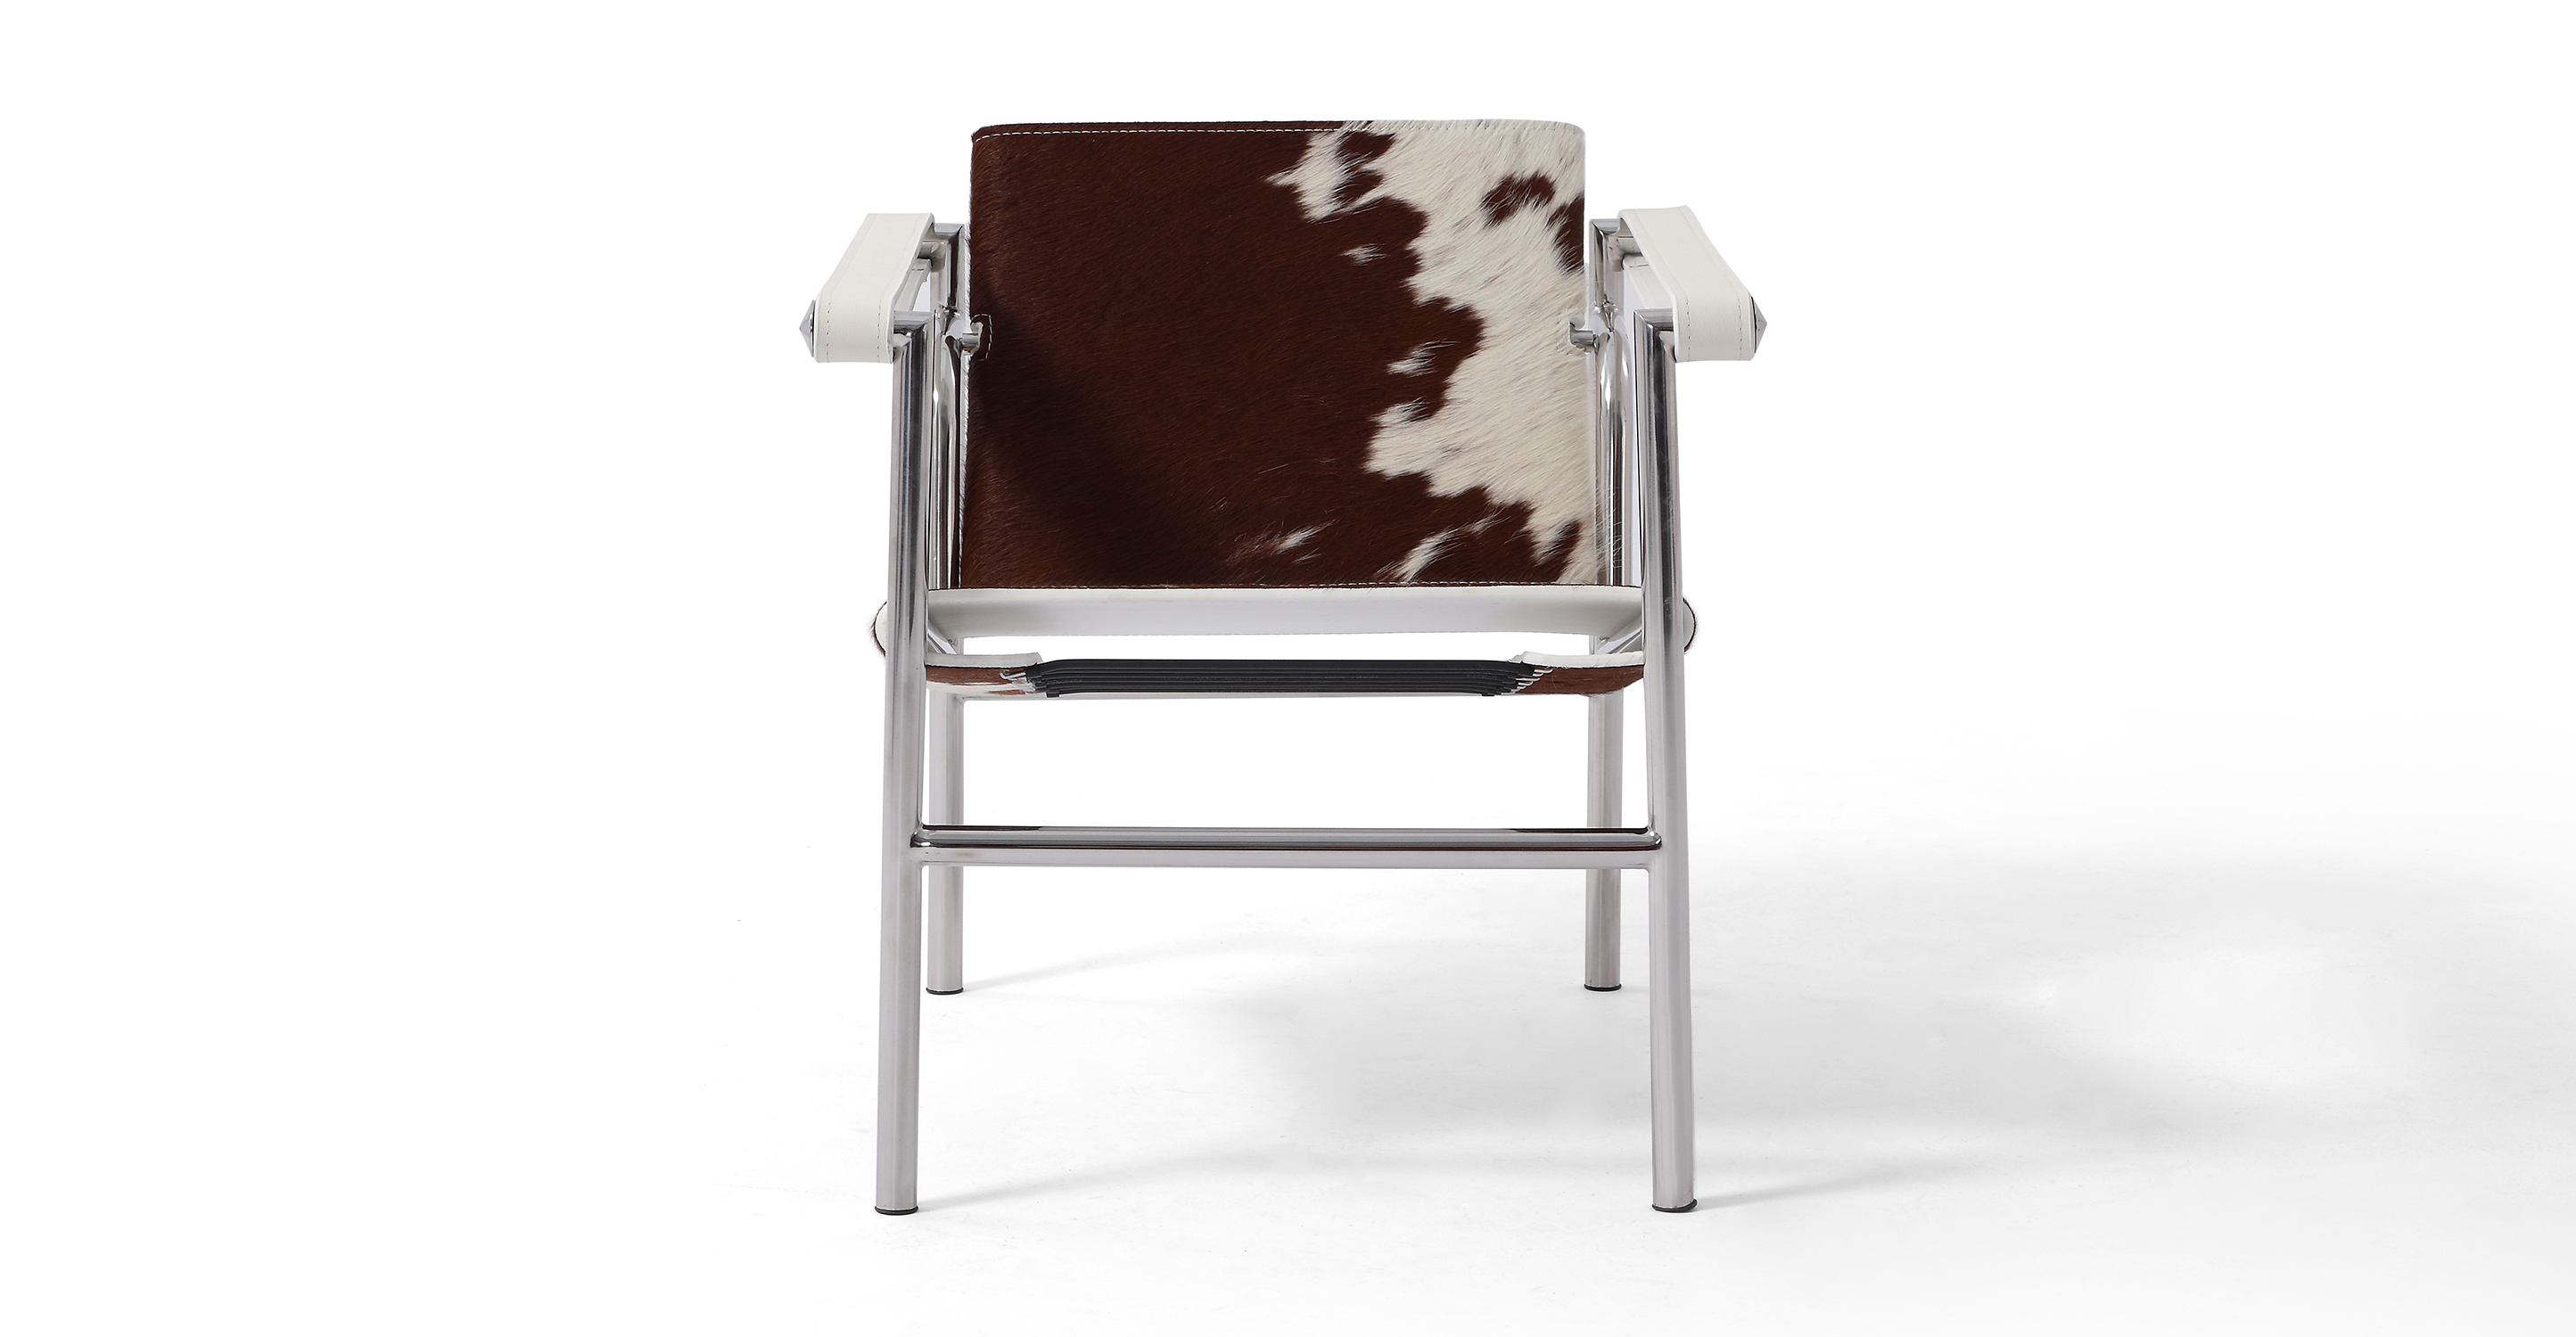 Basculant Sling Leather Chair, Brown & White Cowhide